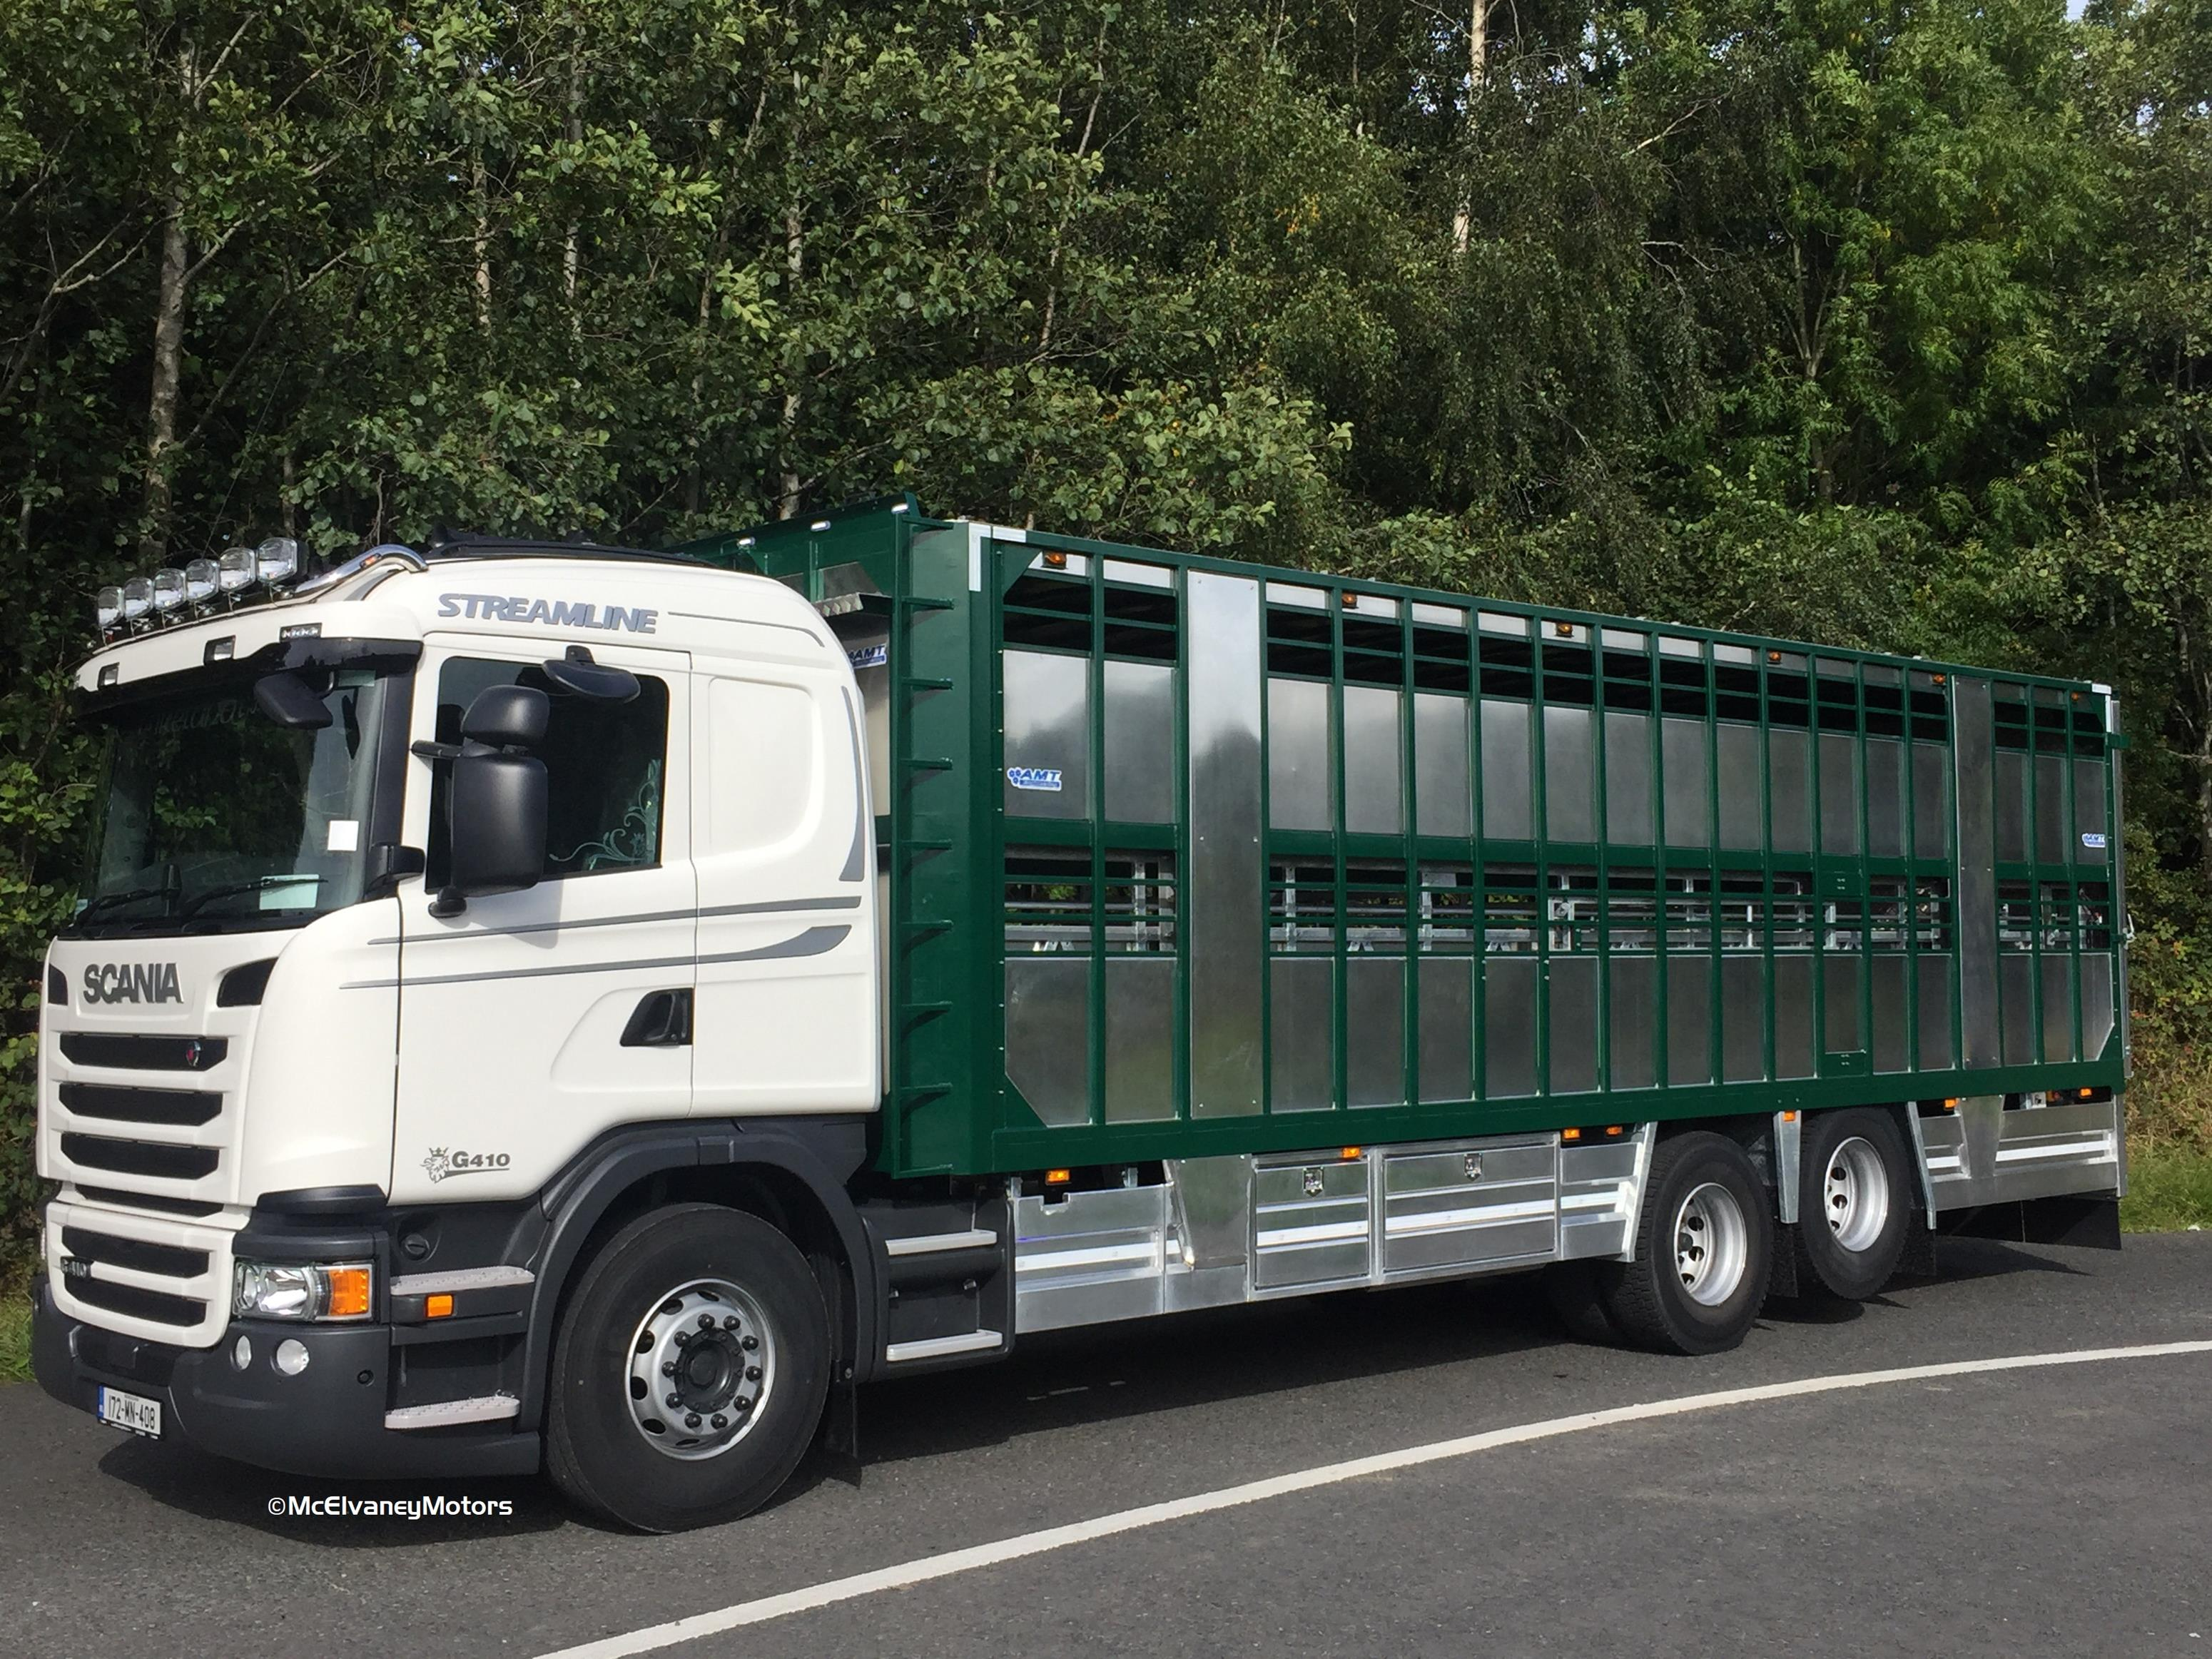 Stunning New Scania G410 for McNally Pig Group!